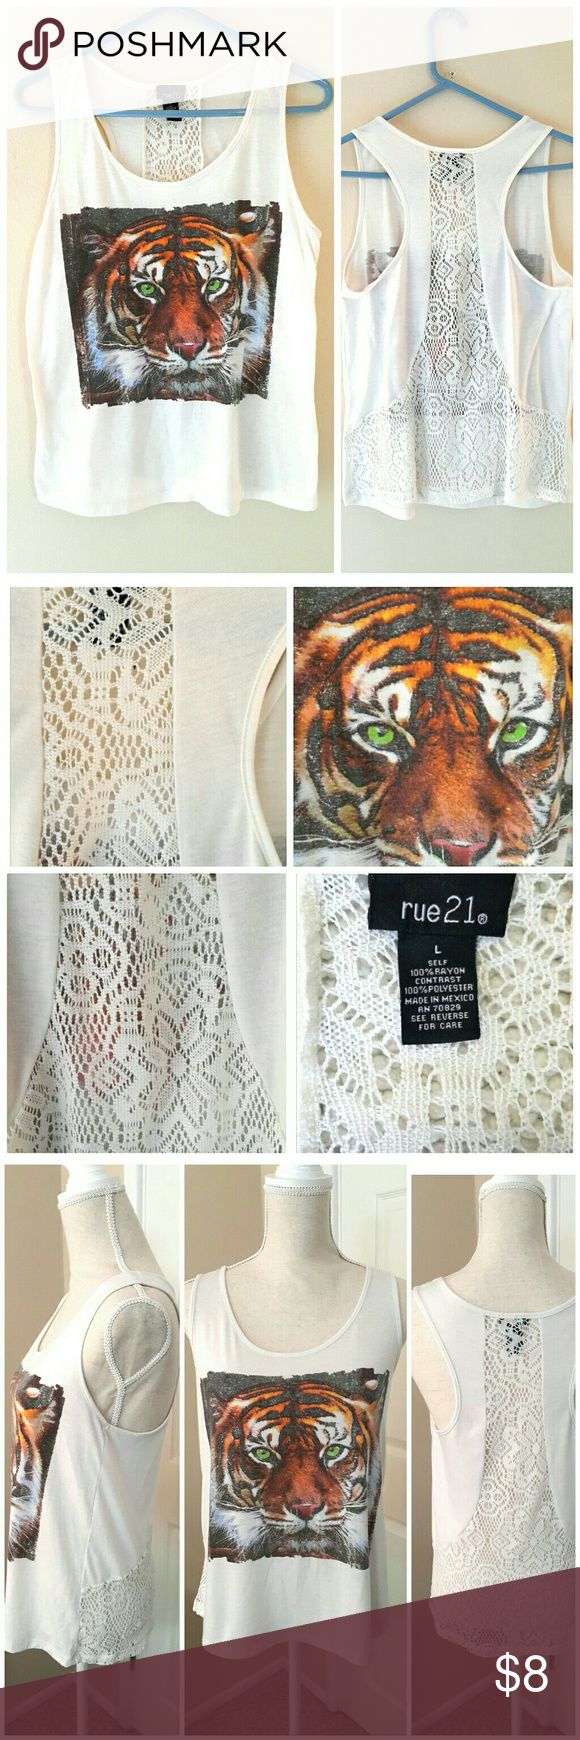 "Rue21 White Lace Tiger Face Print Tank Top Size L White Lace Tiger Face Print Tank Top from Rue21. Size Large. Small sign of wear but overall really great condition - no stains or rips. Made in Mexico.  ℹ Chest 17"", Length 23"" Measured flat Rue21 Tops Tank Tops"